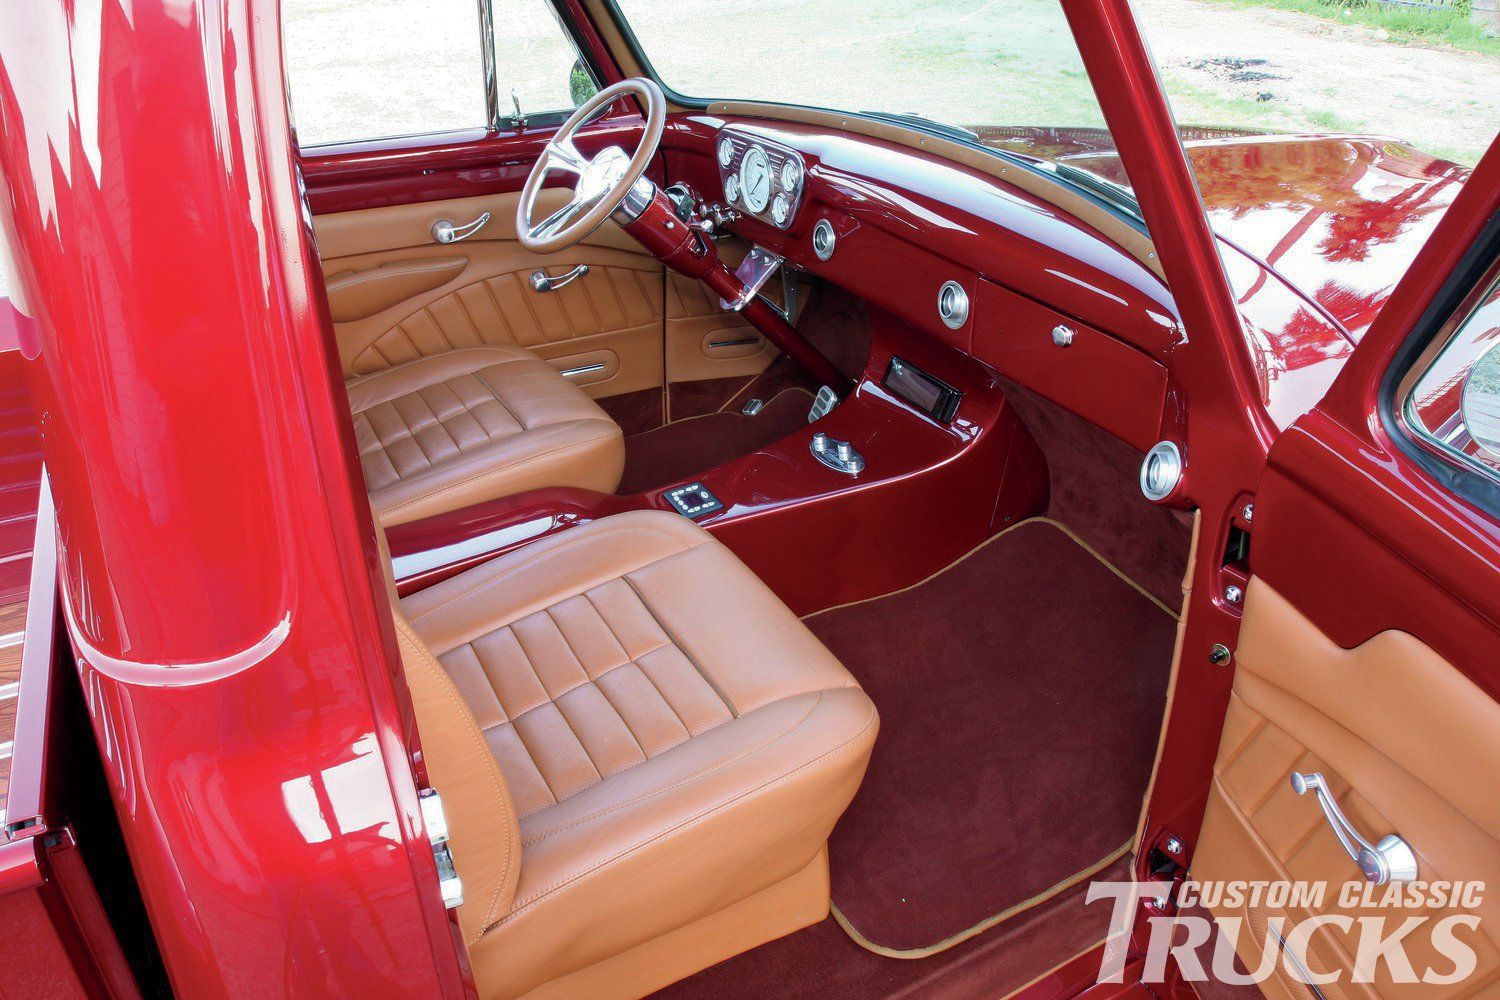 Image Result For 1954 Ford Truck Interior Pinterest F100 Pick Up